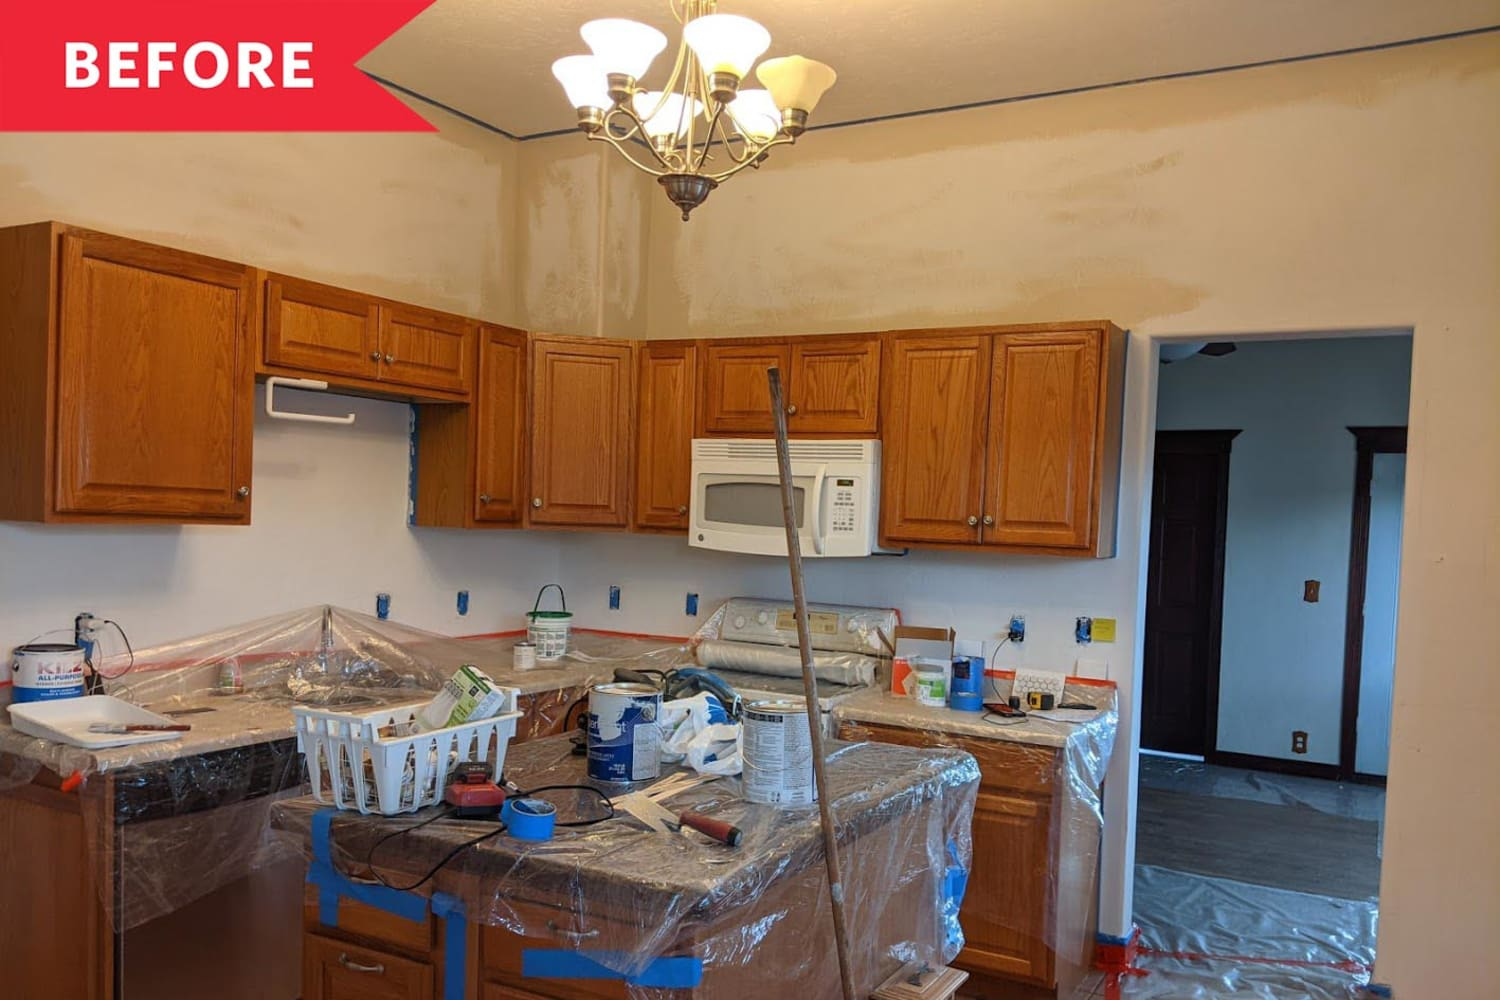 Before and After: A Blah Brown Kitchen Transforms with Fresh Paint, Counters, and More